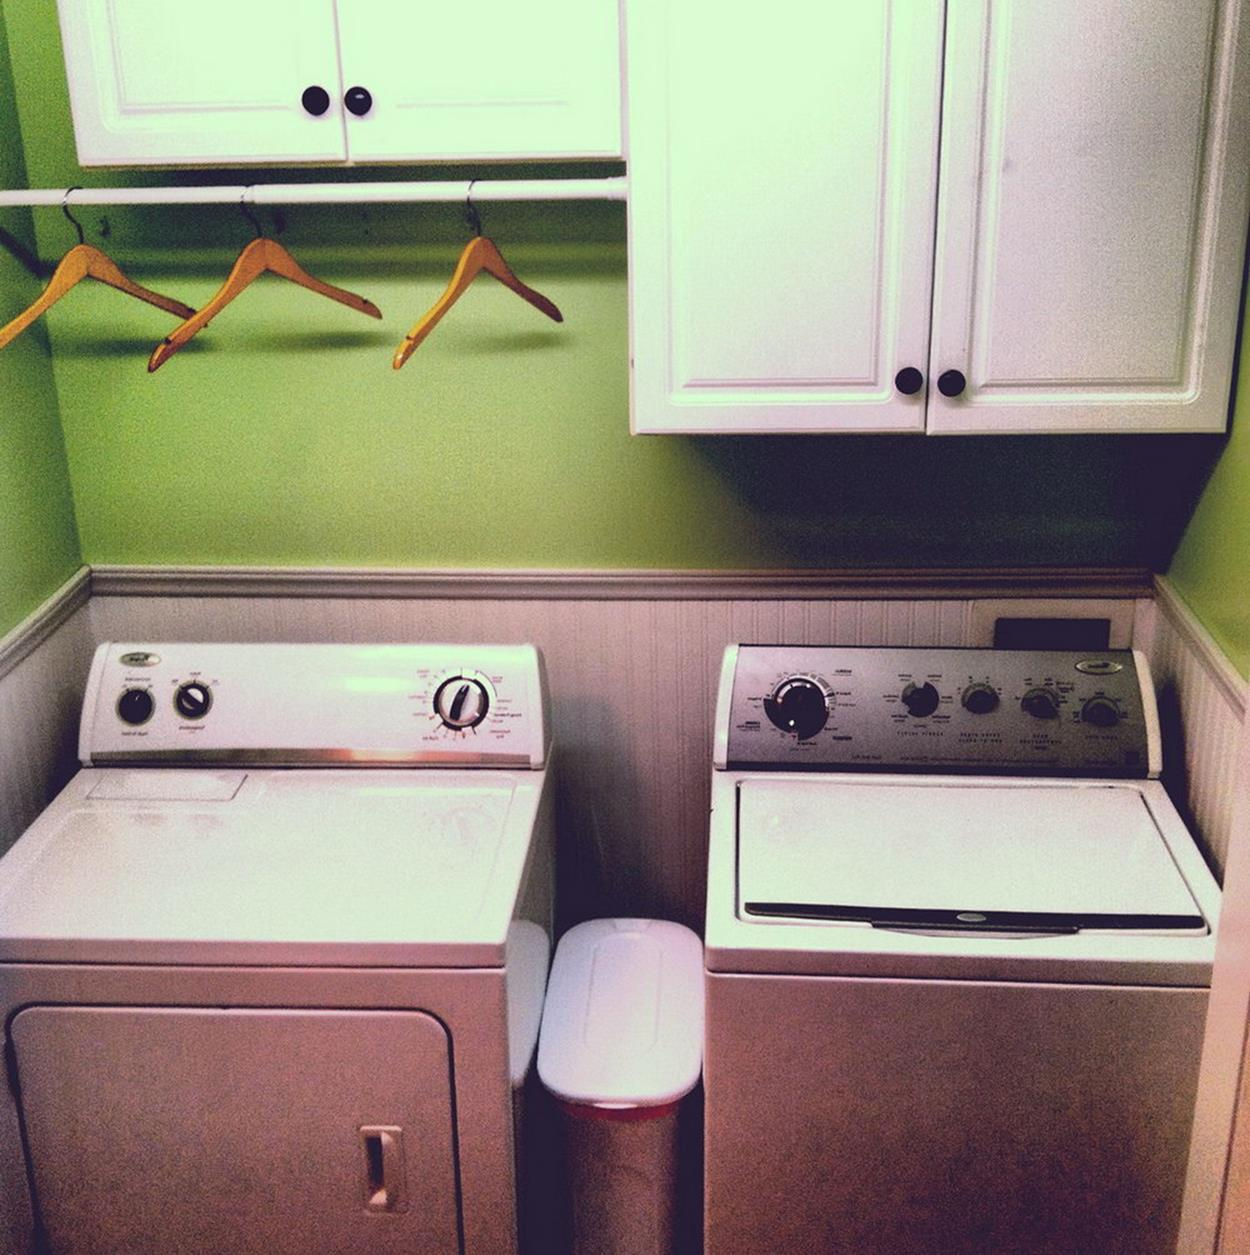 Decorating A Laundry Room On A Budget 26